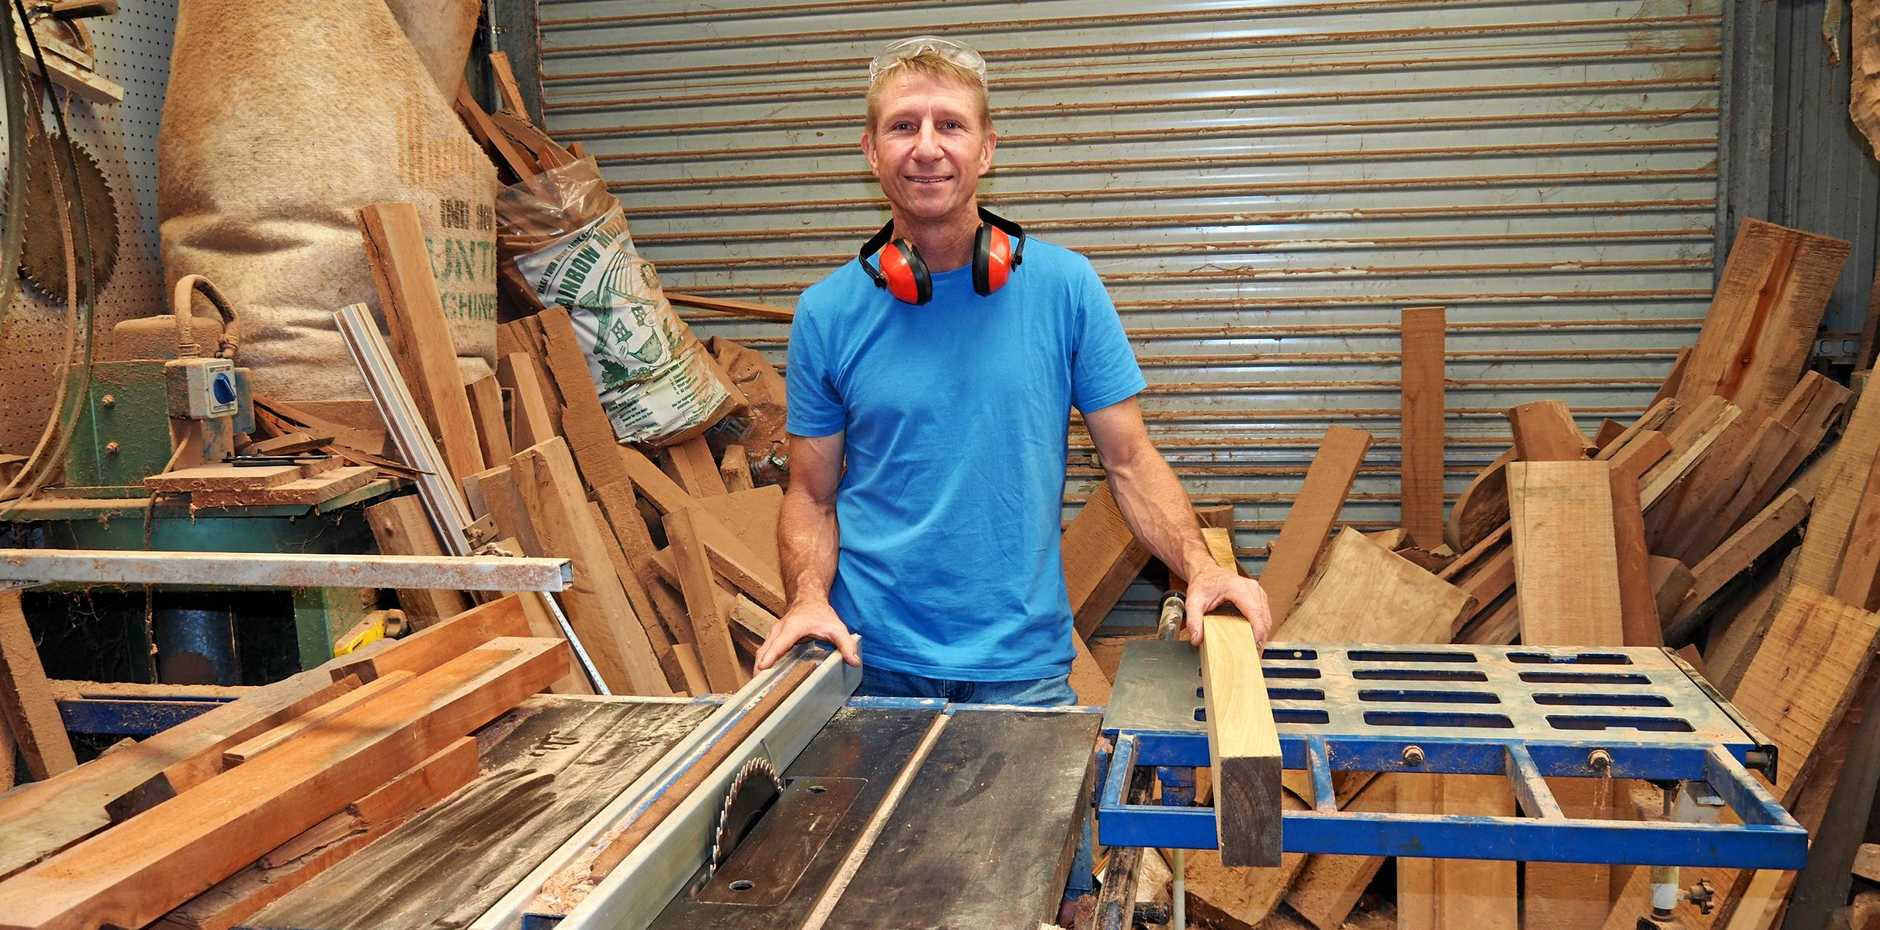 MOBILE SAWMILLER: Ken Cowden loves working with timber and his clients.